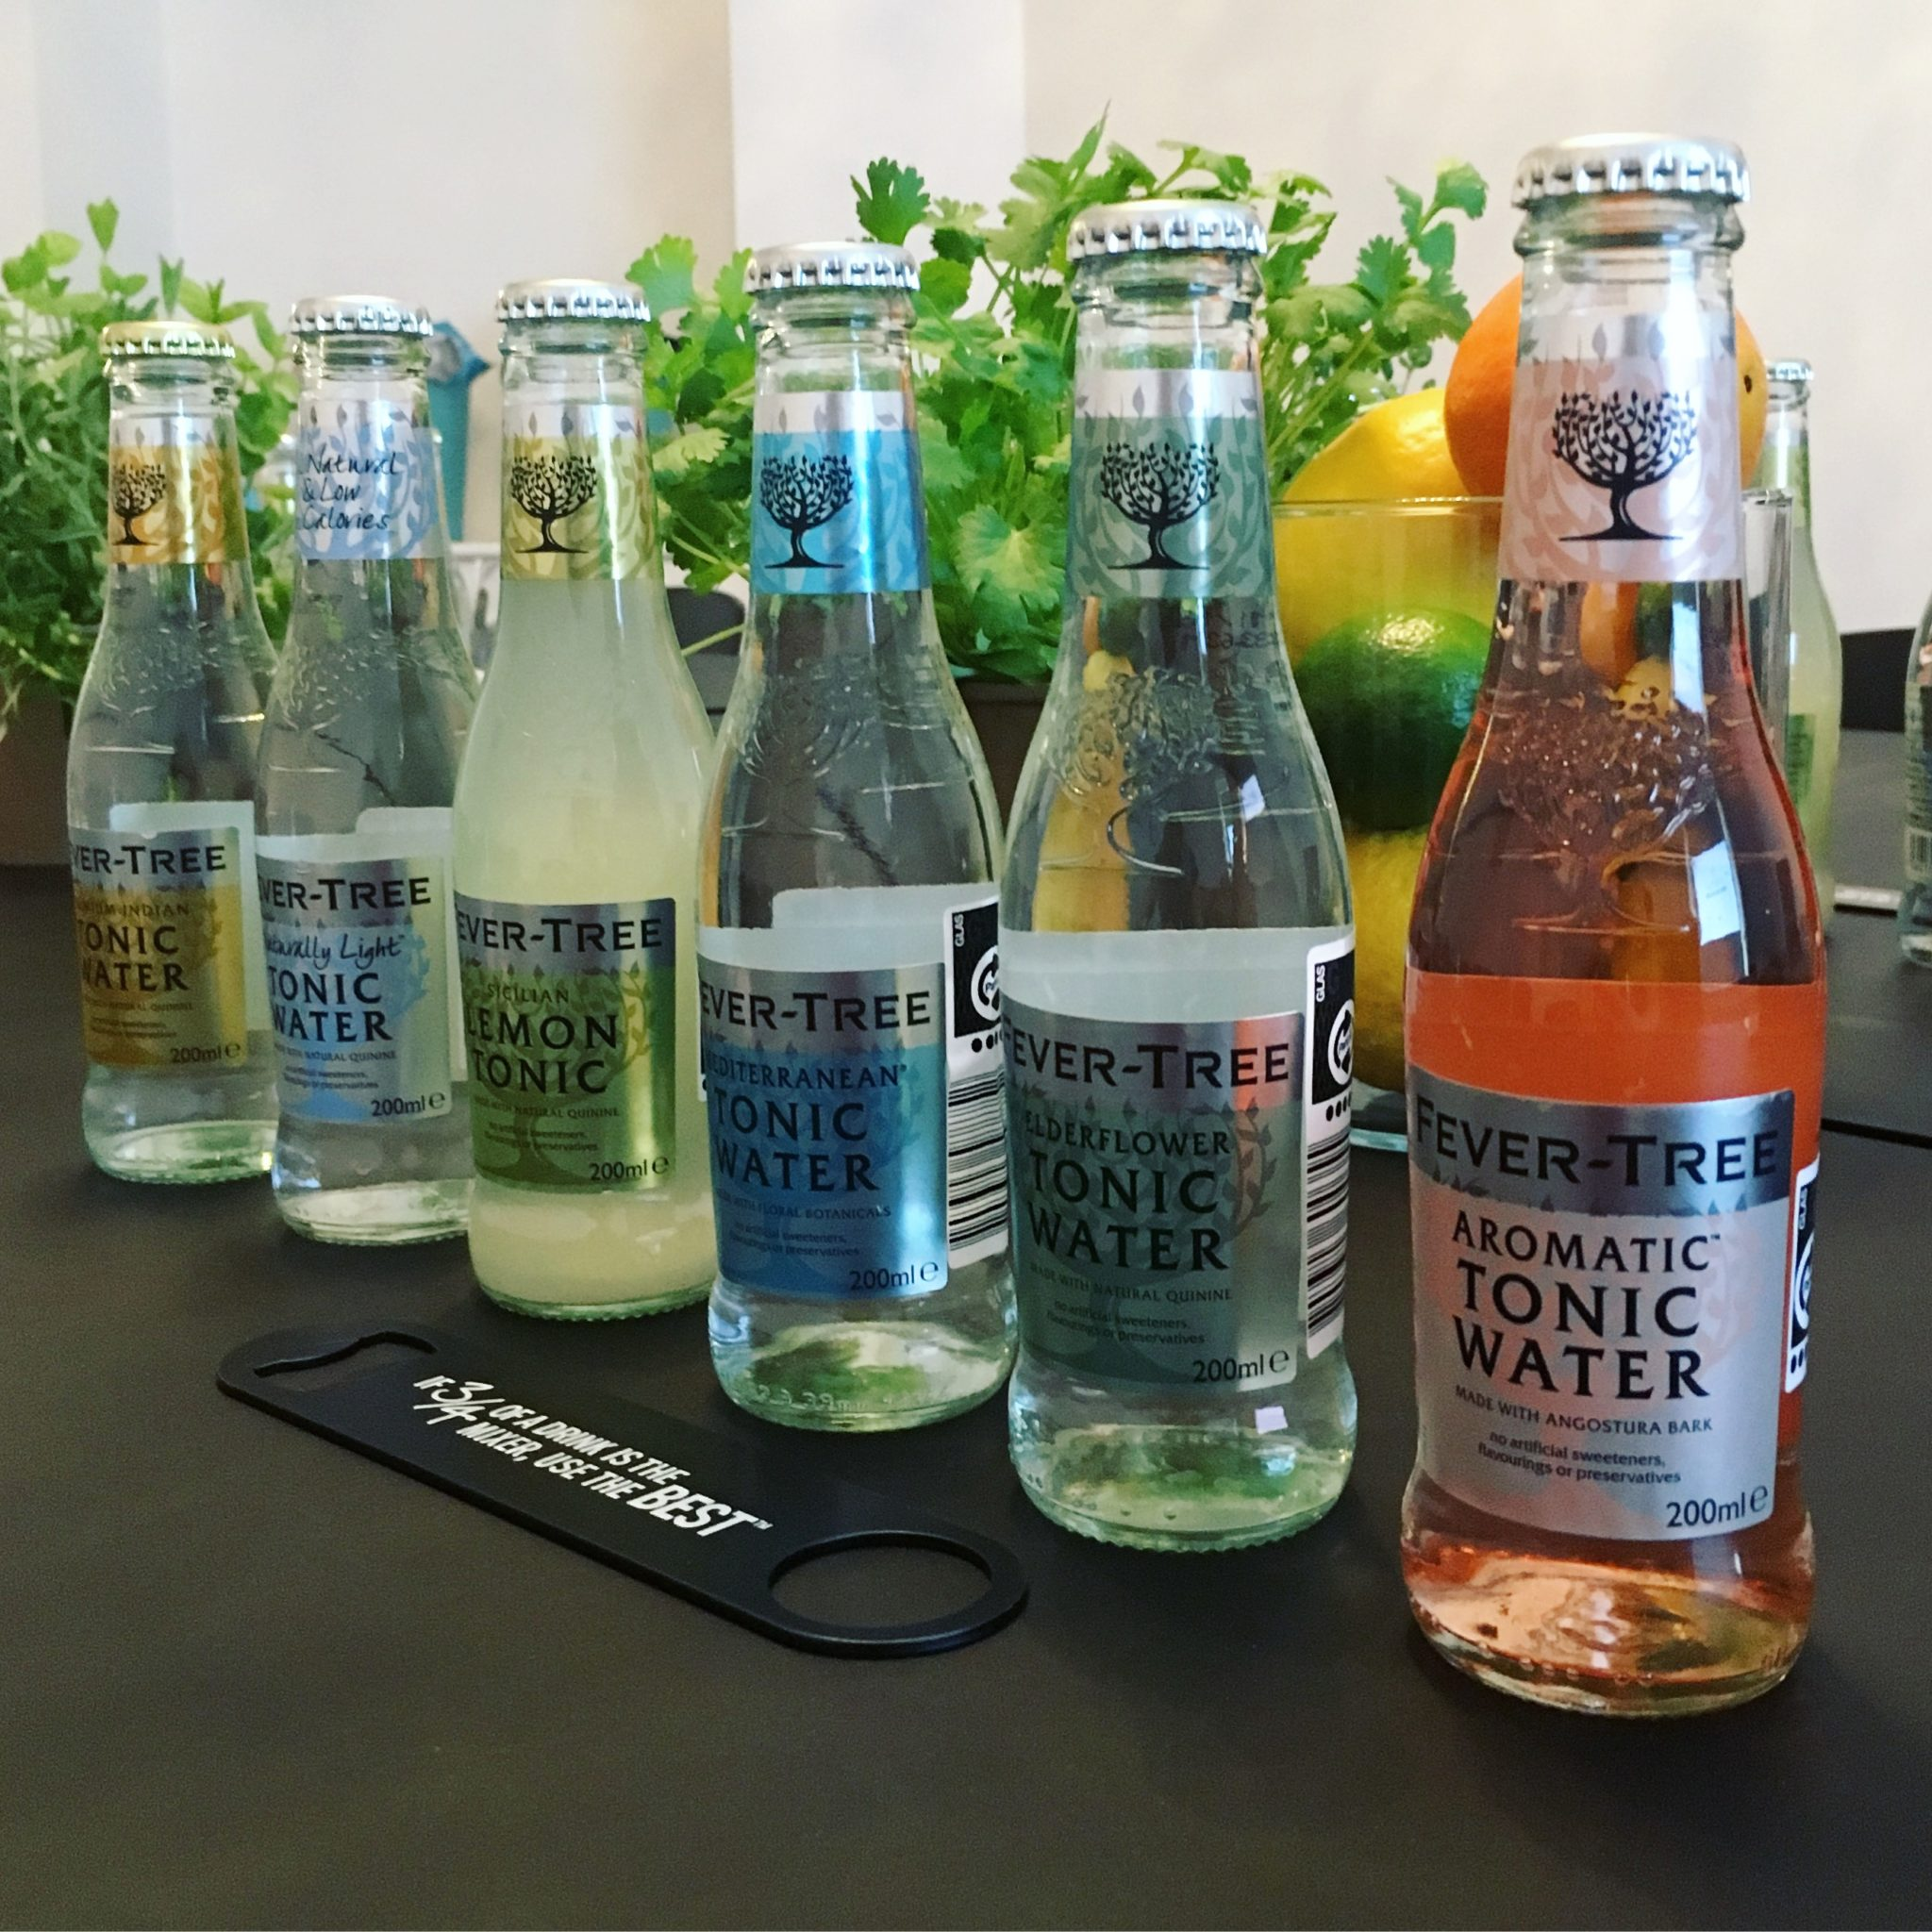 Ny Tonic: Fever-Tree Aromatic Tonic Water